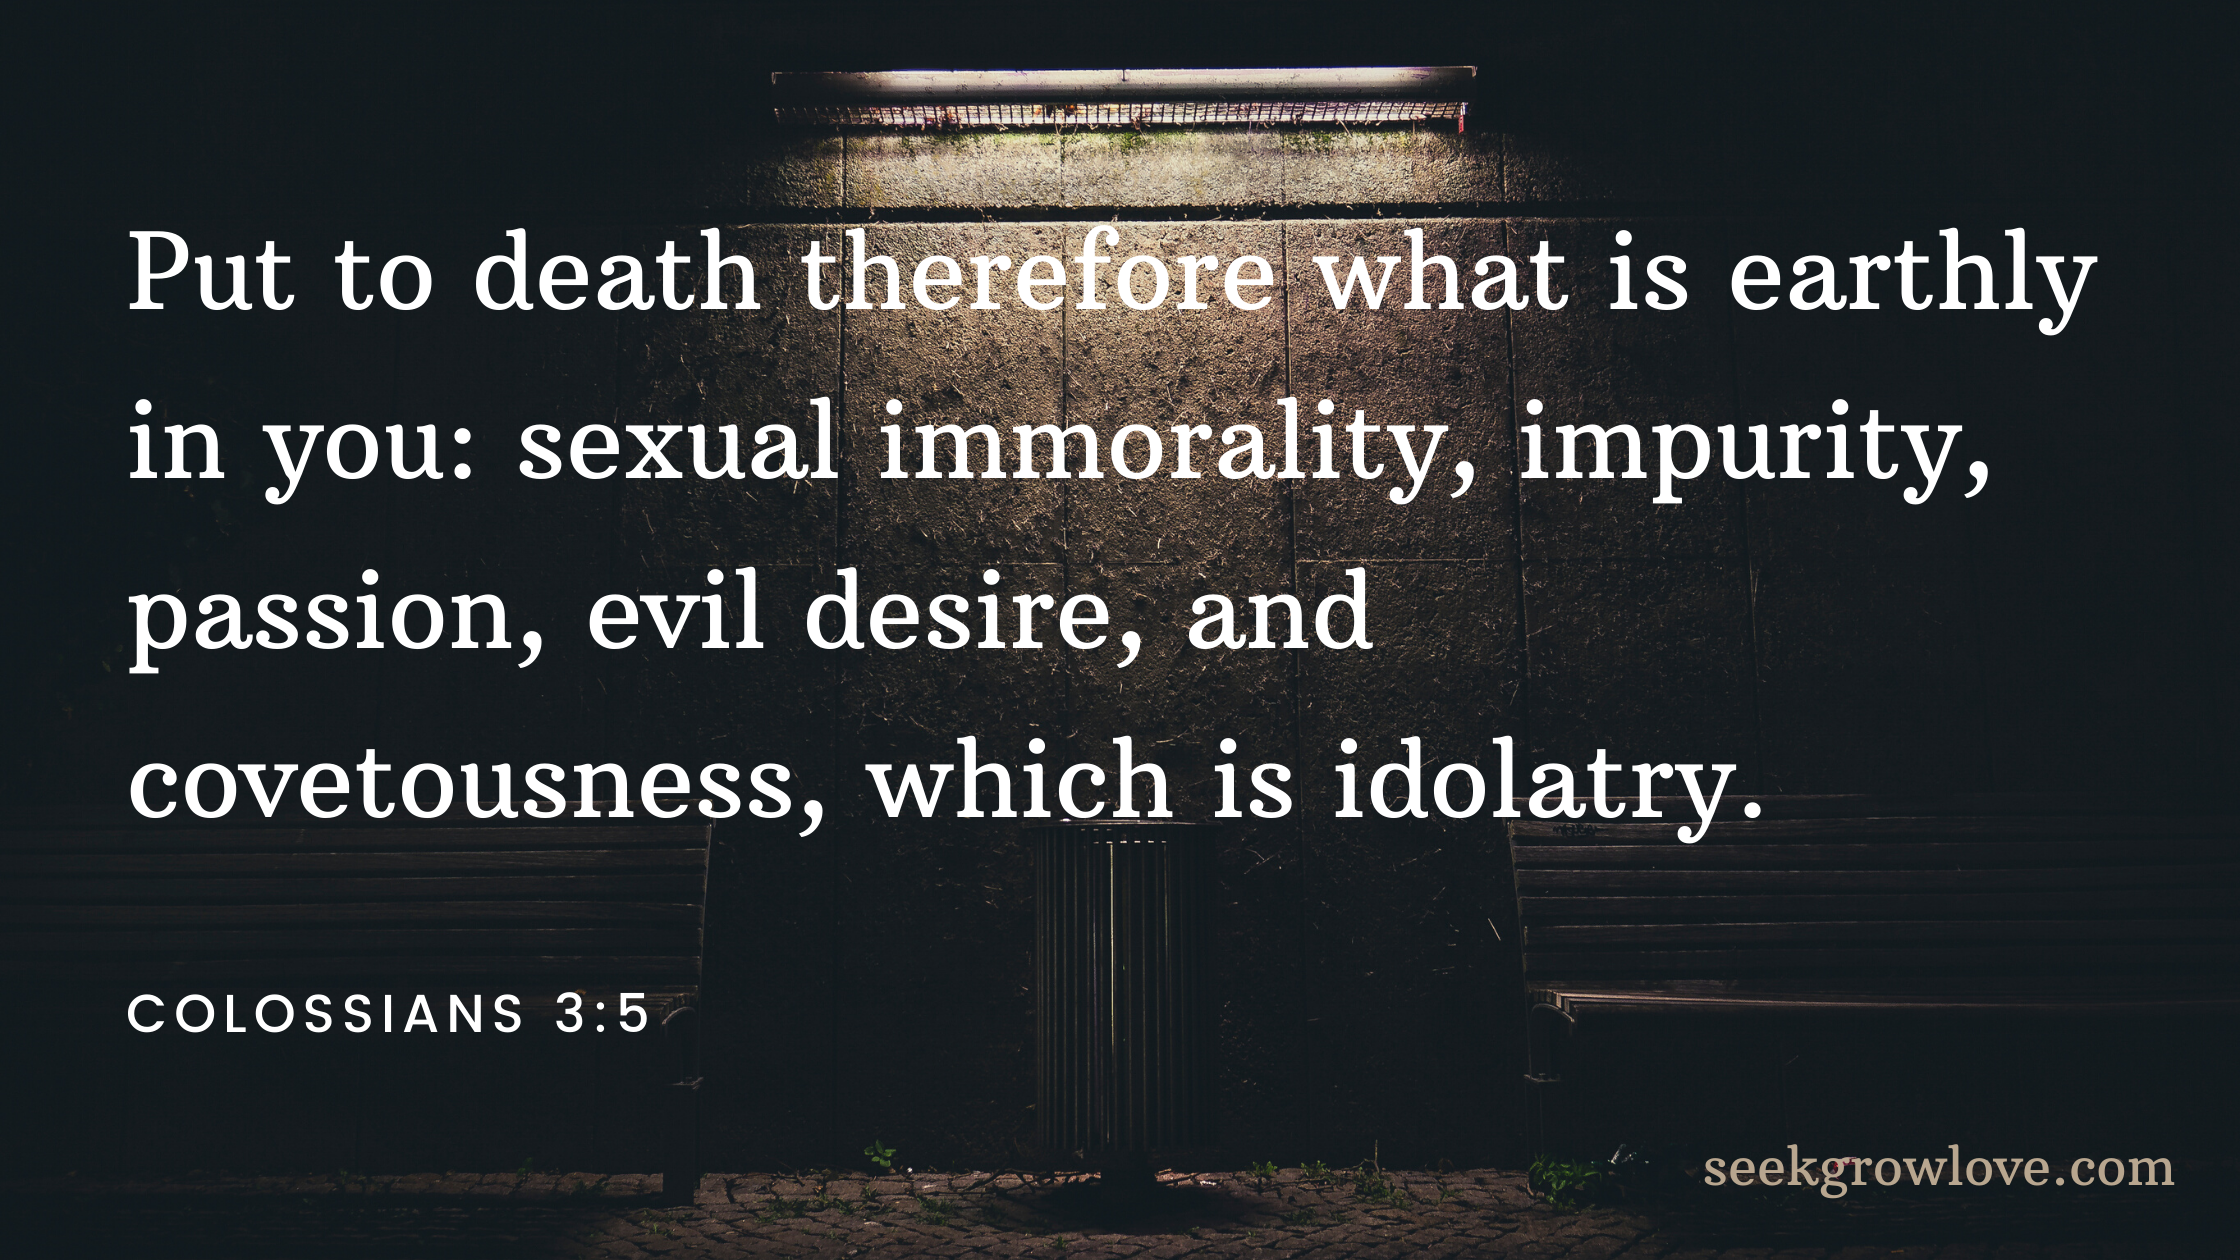 Put to death therefore what is earthly in you_ sexual immorality, impurity, passion, evil desire, and covetousness, which is idolatry.